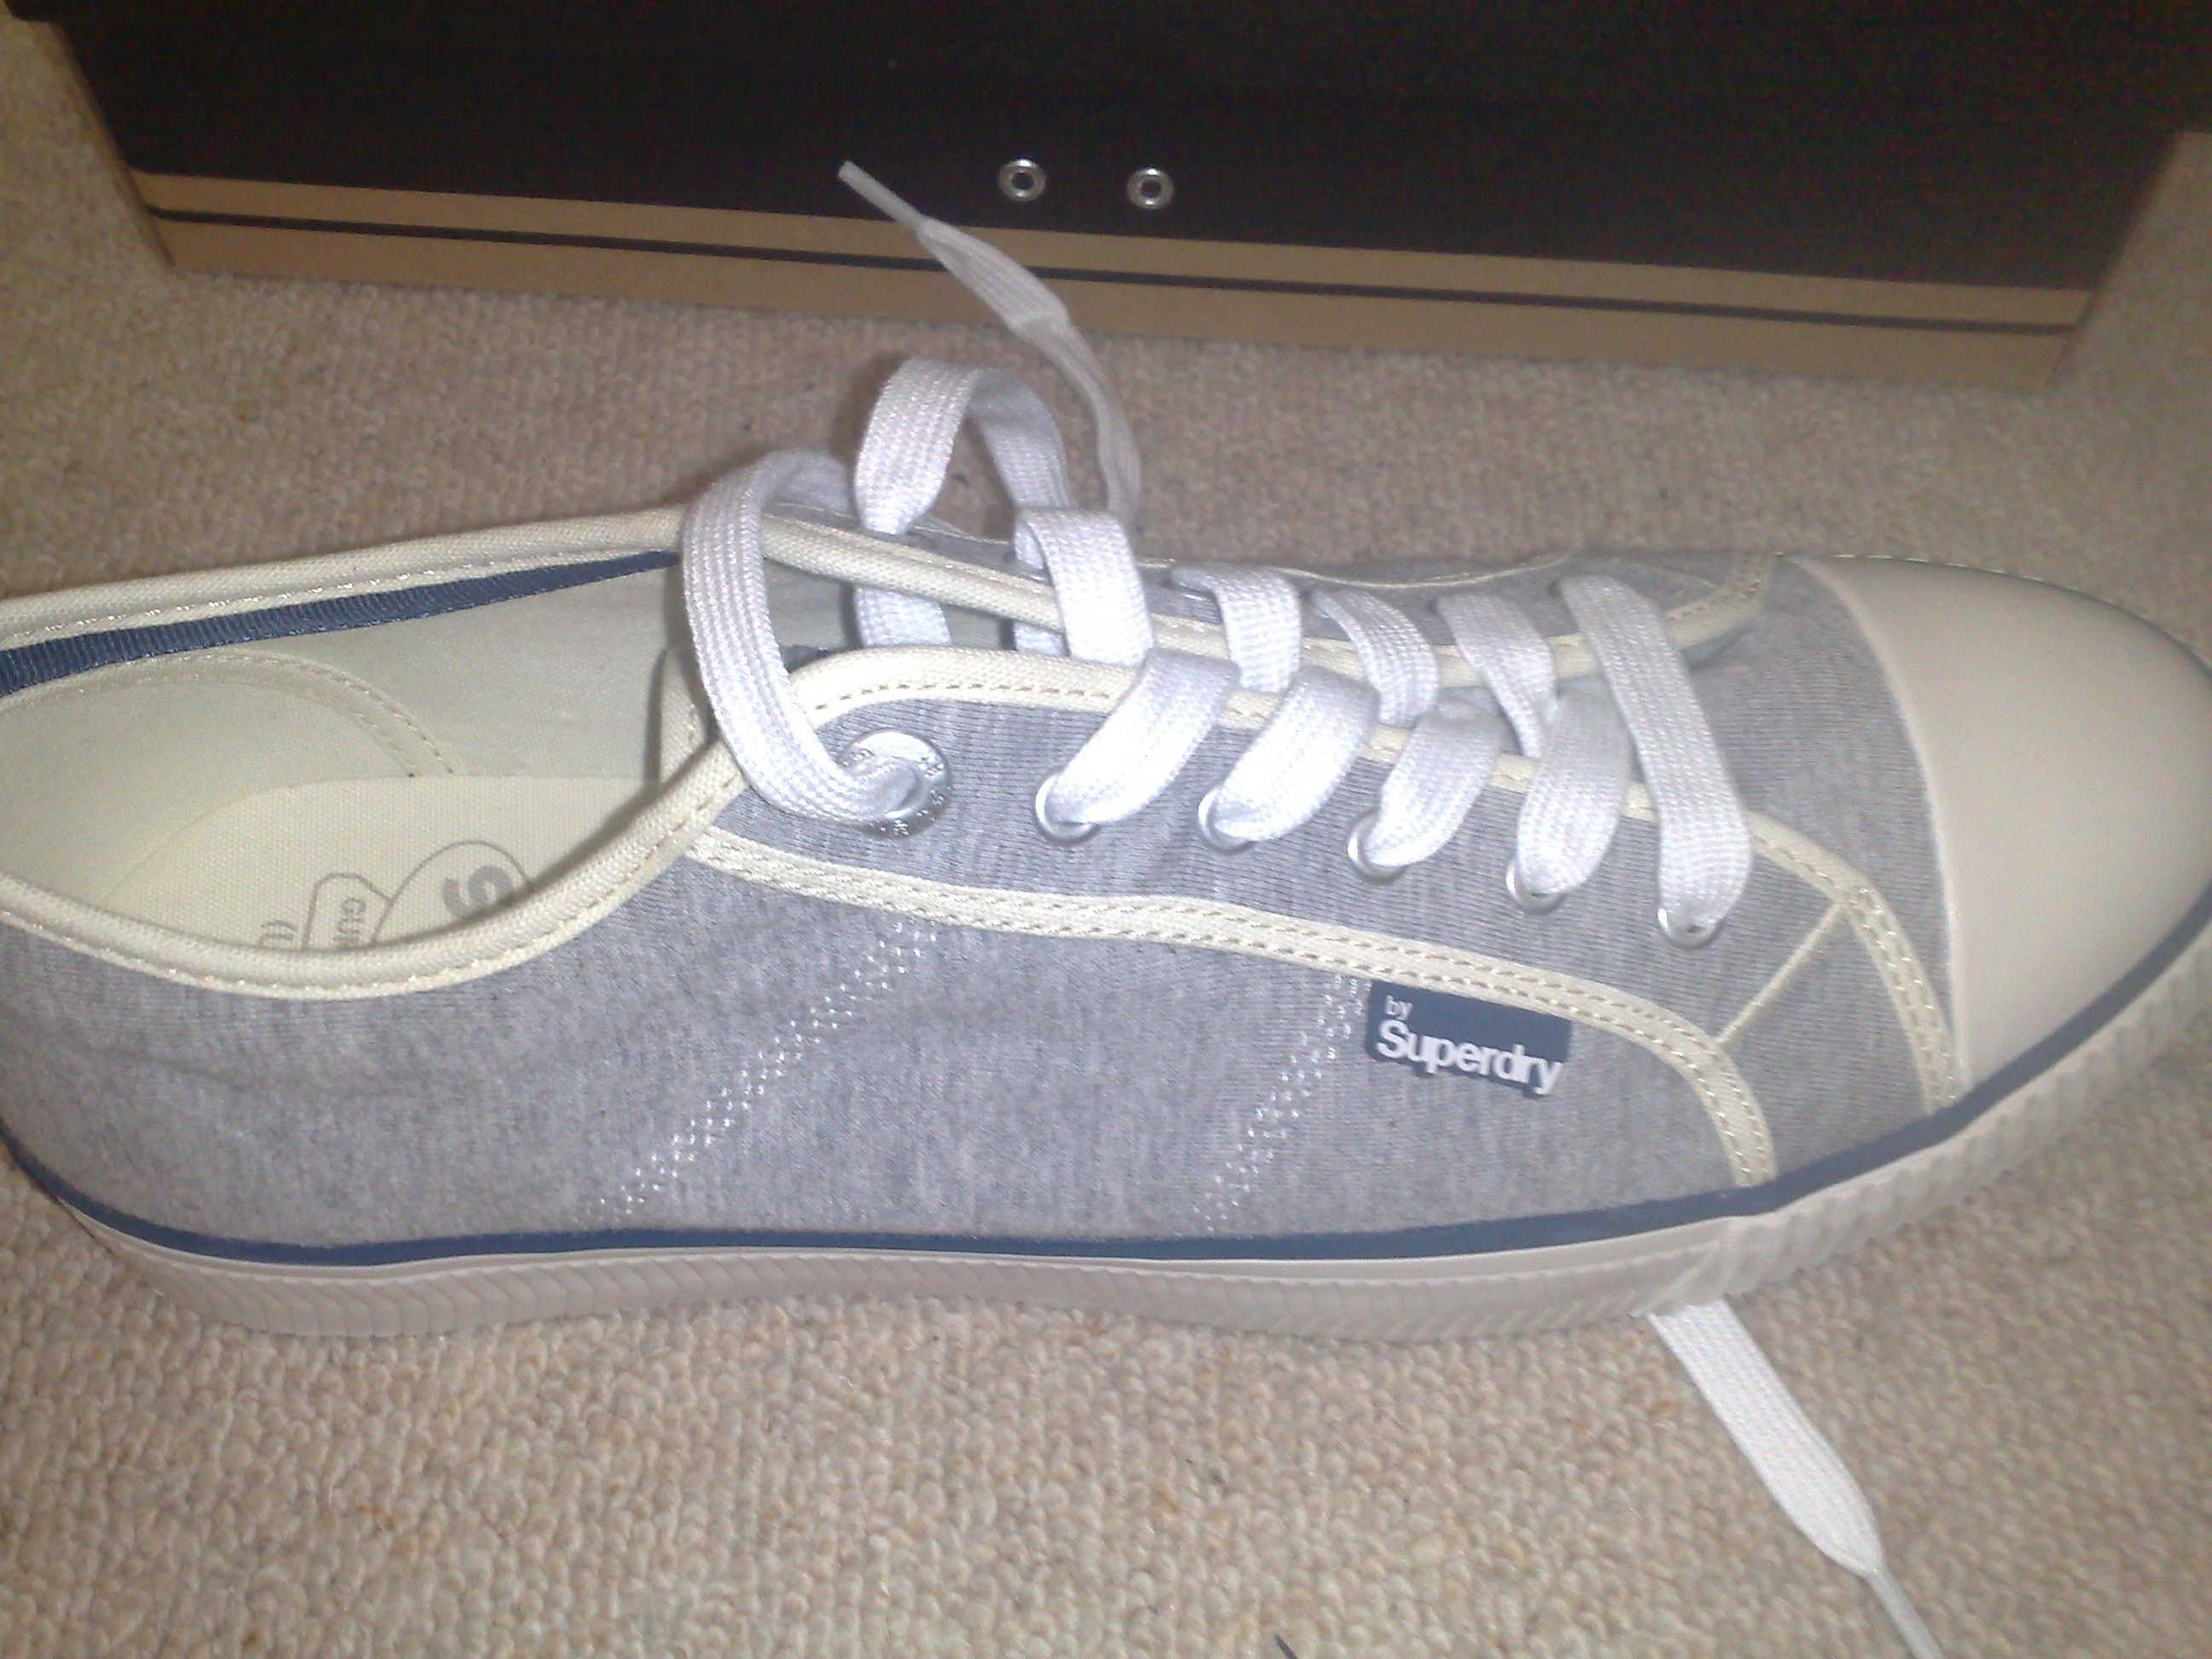 New shoes by 'Super Dry'